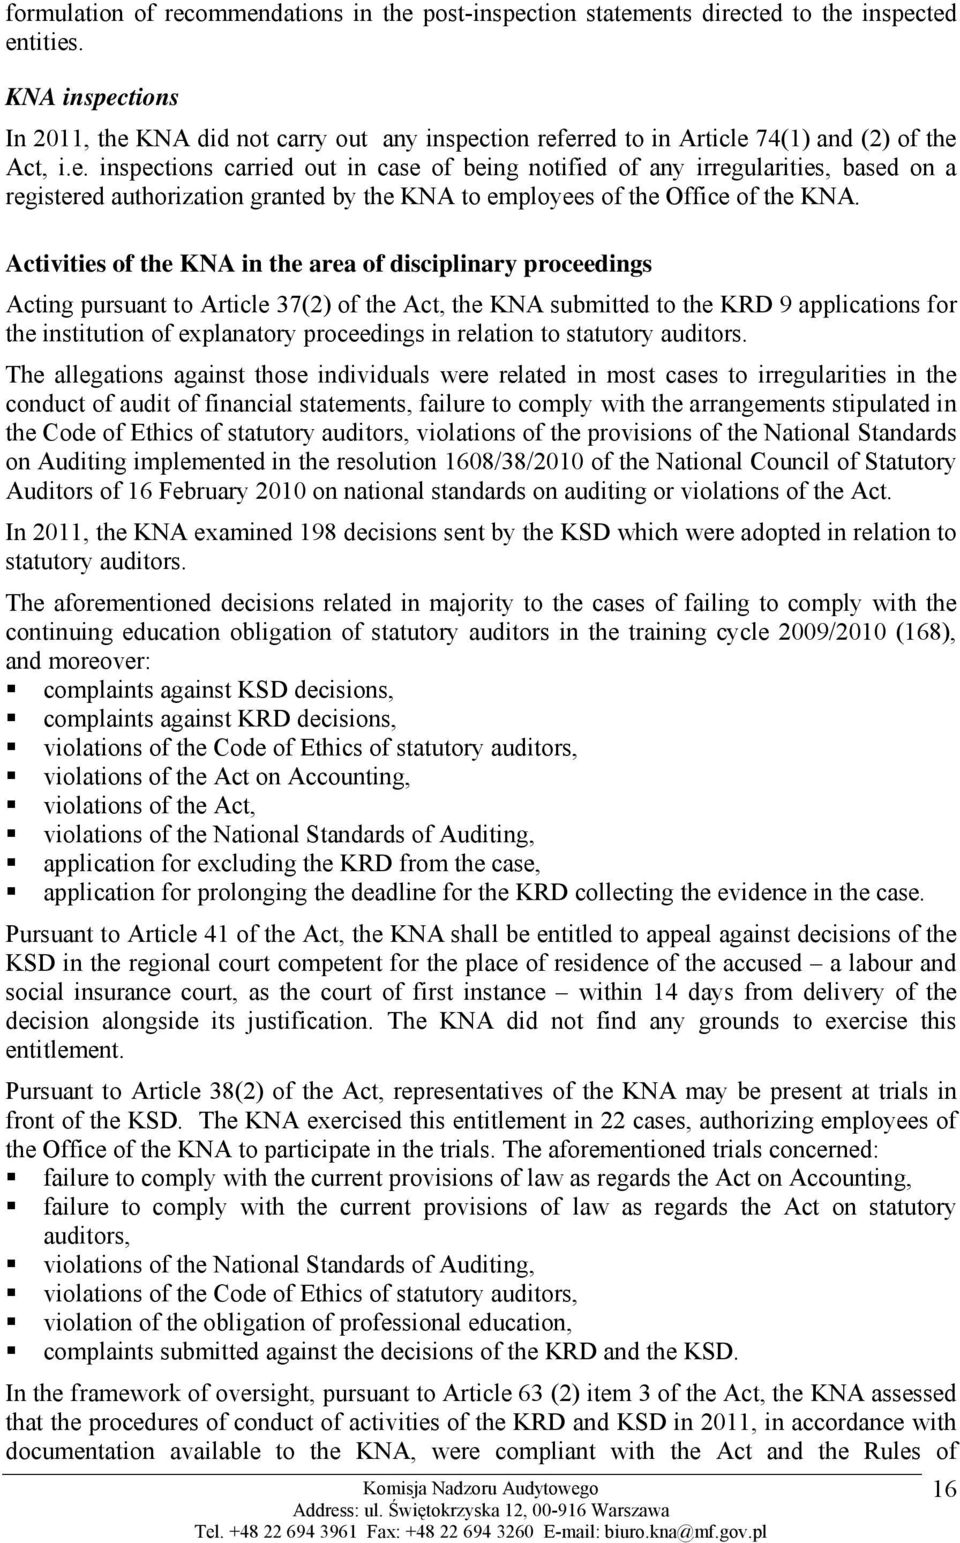 Activities of the KNA in the area of disciplinary proceedings Acting pursuant to Article 37(2) of the Act, the KNA submitted to the KRD 9 applications for the institution of explanatory proceedings